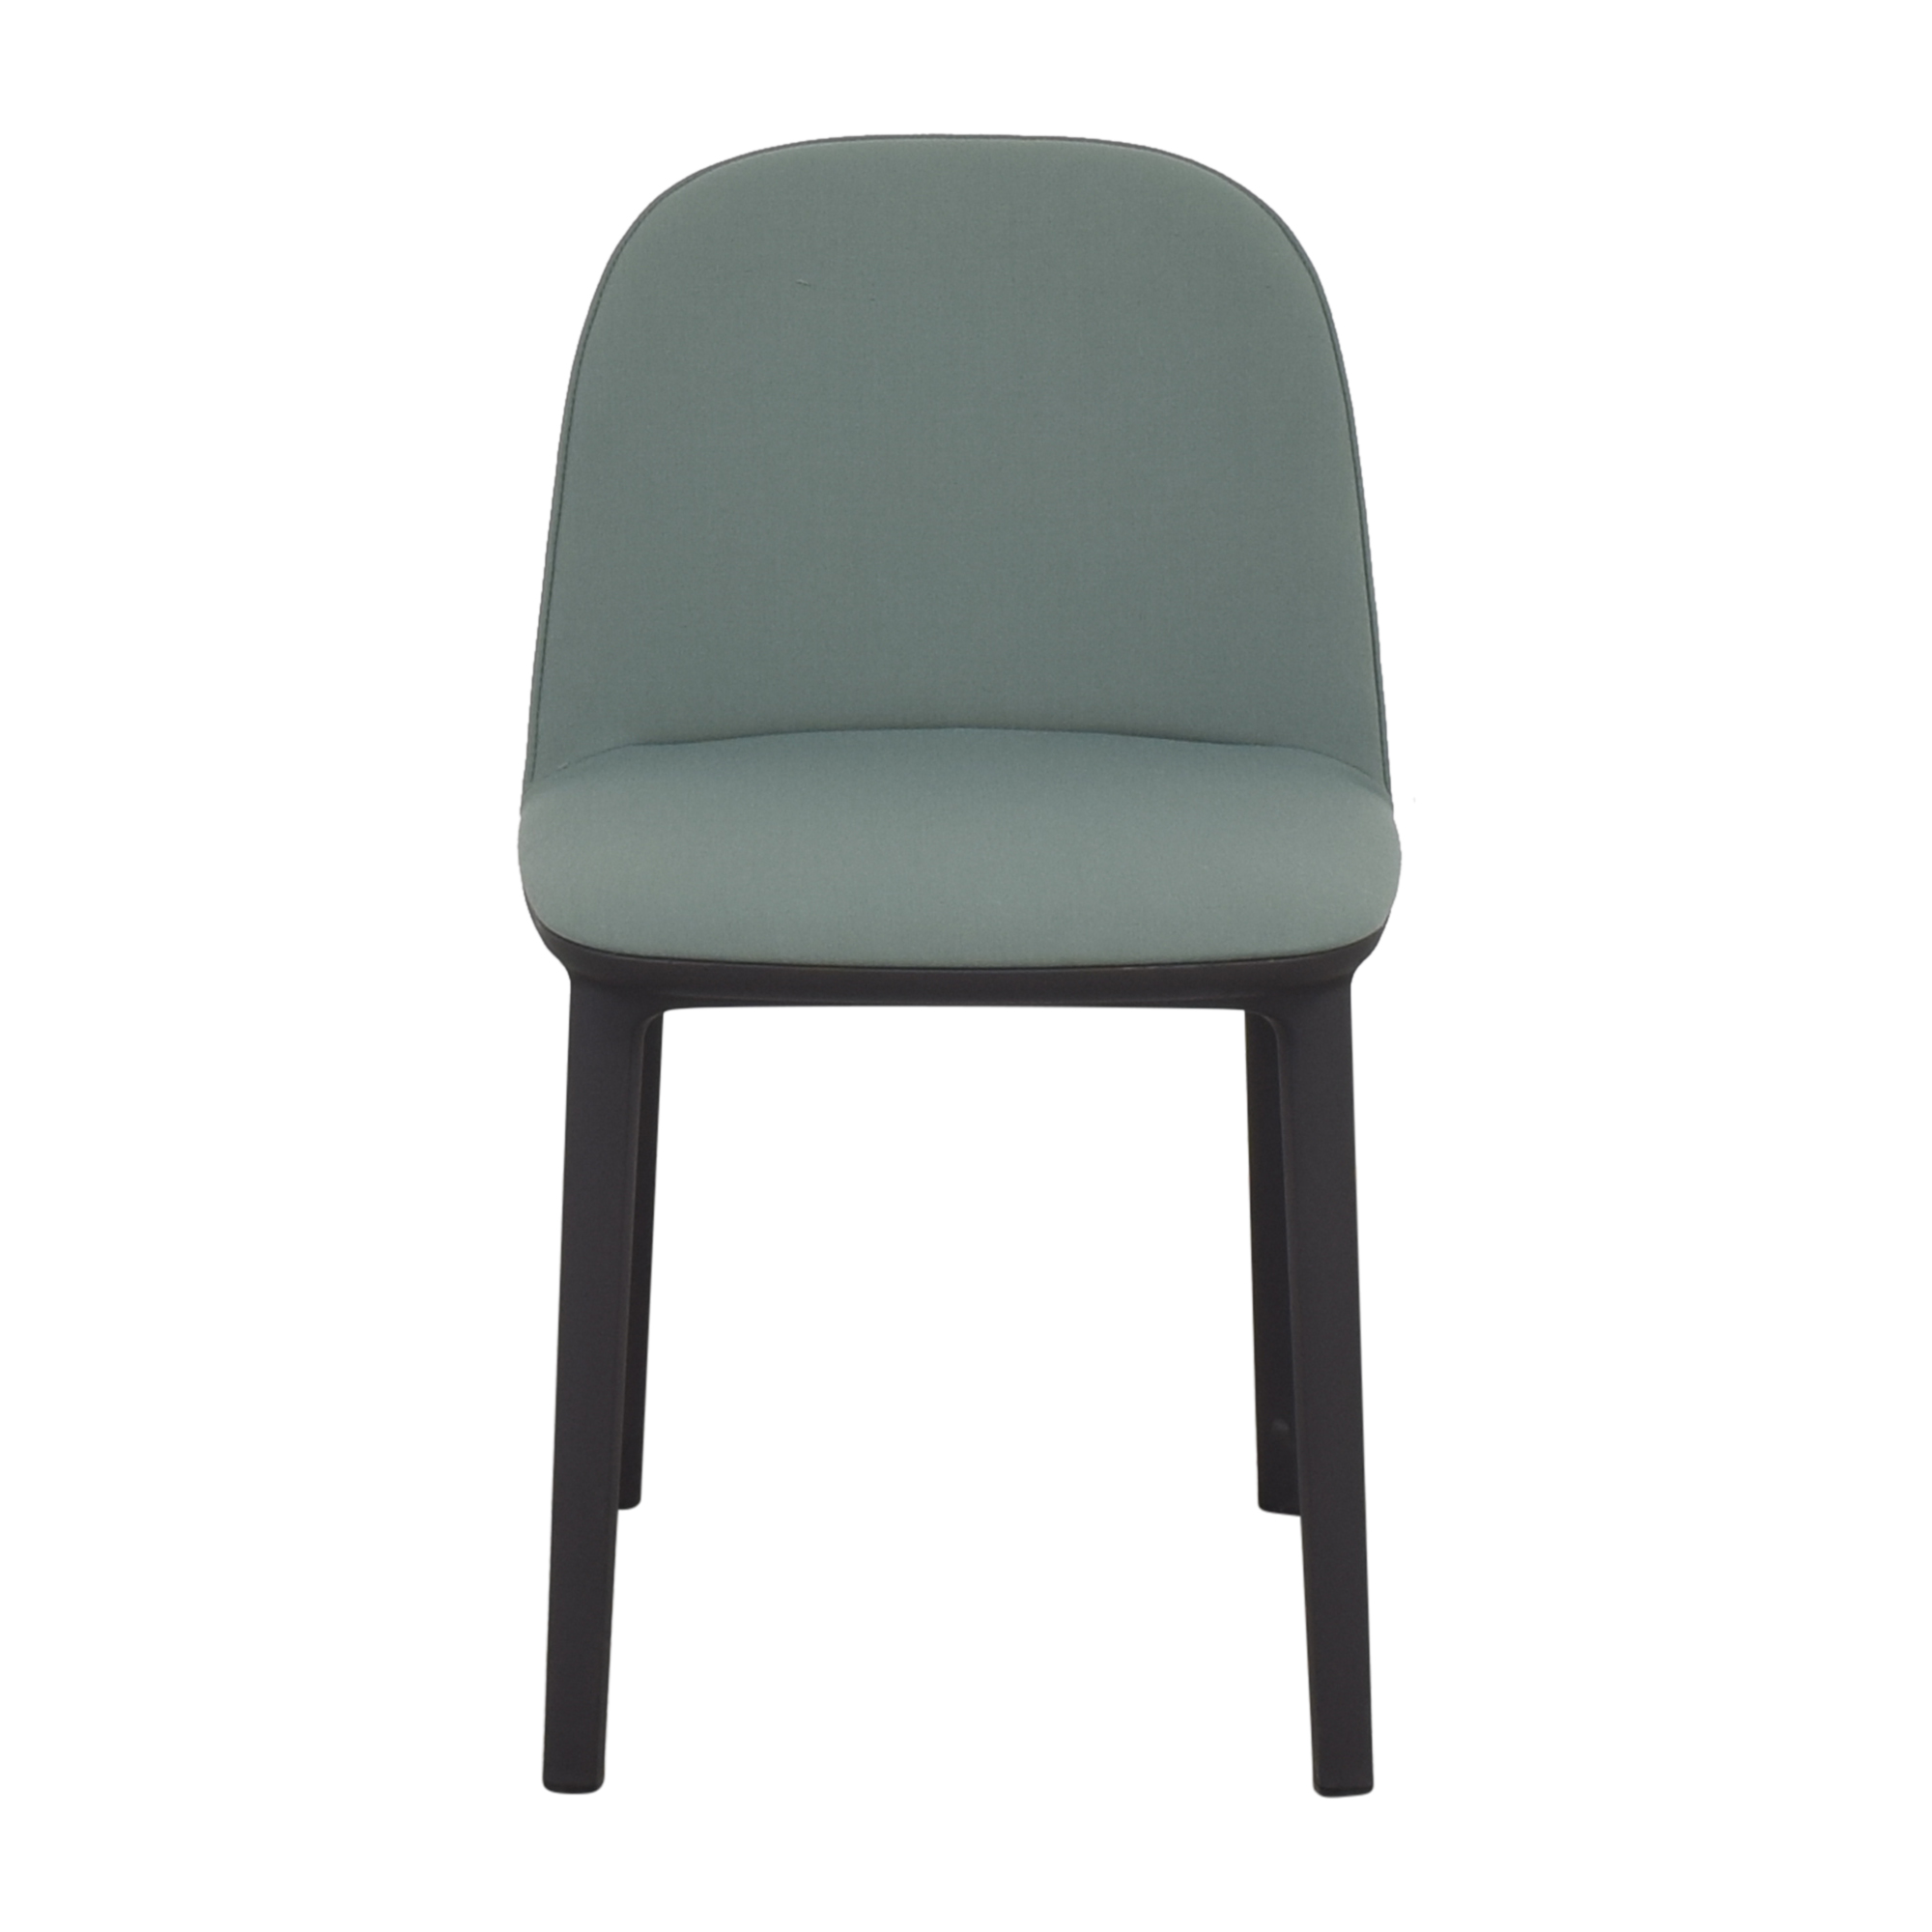 Vitra Softshell Side Chair / Chairs